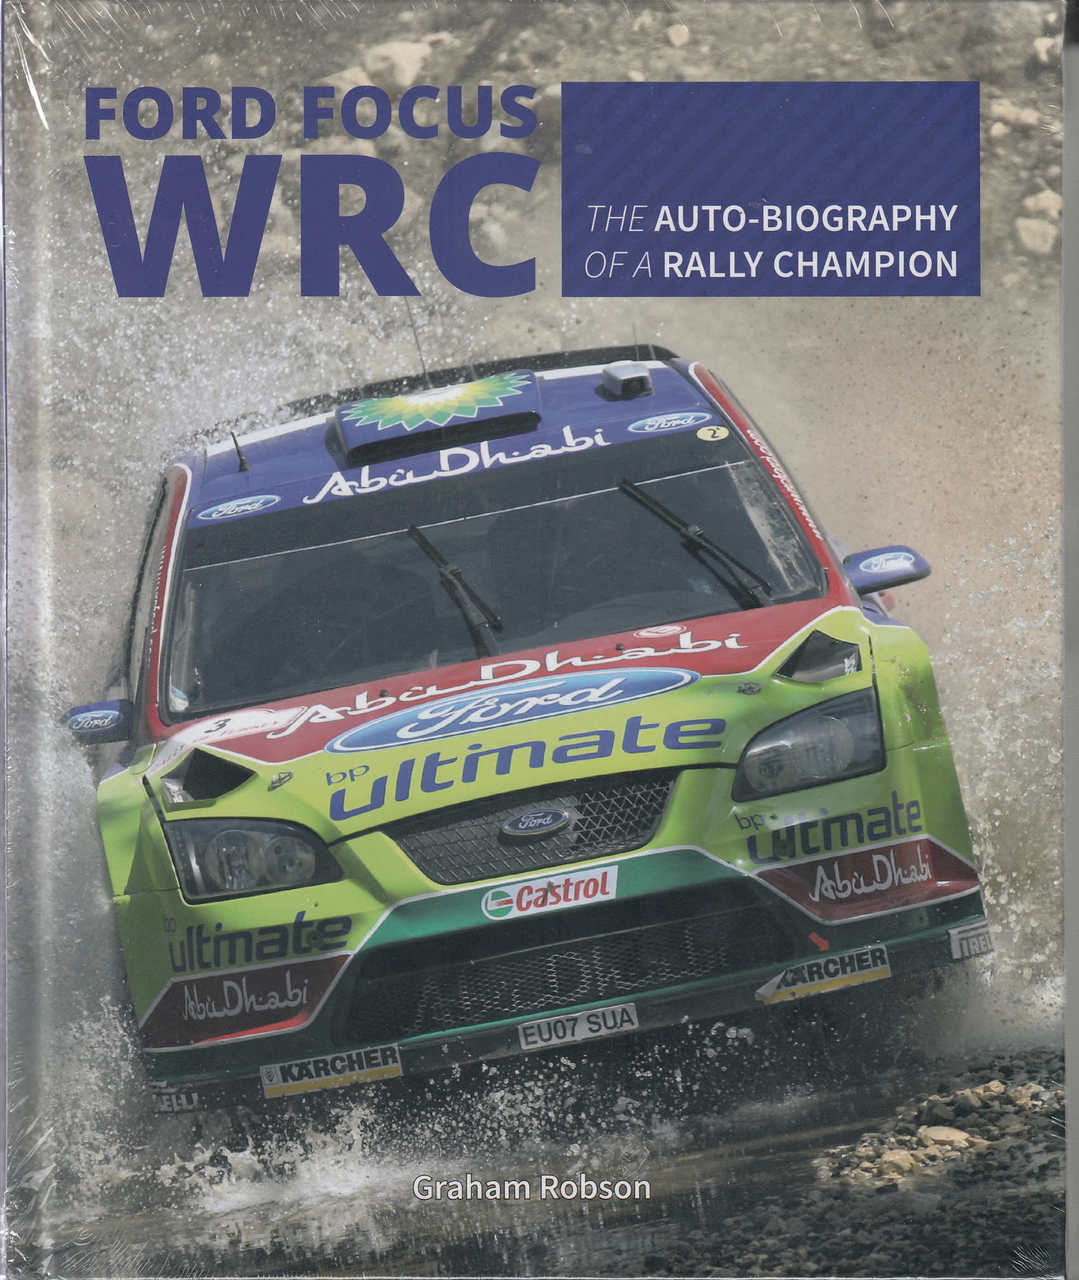 Ford Focus Wrc The Auto Biography Of A Rally Champion 2002 Se Wagon 20 Liter Dohc 16valve Zetec 4 Cylinder